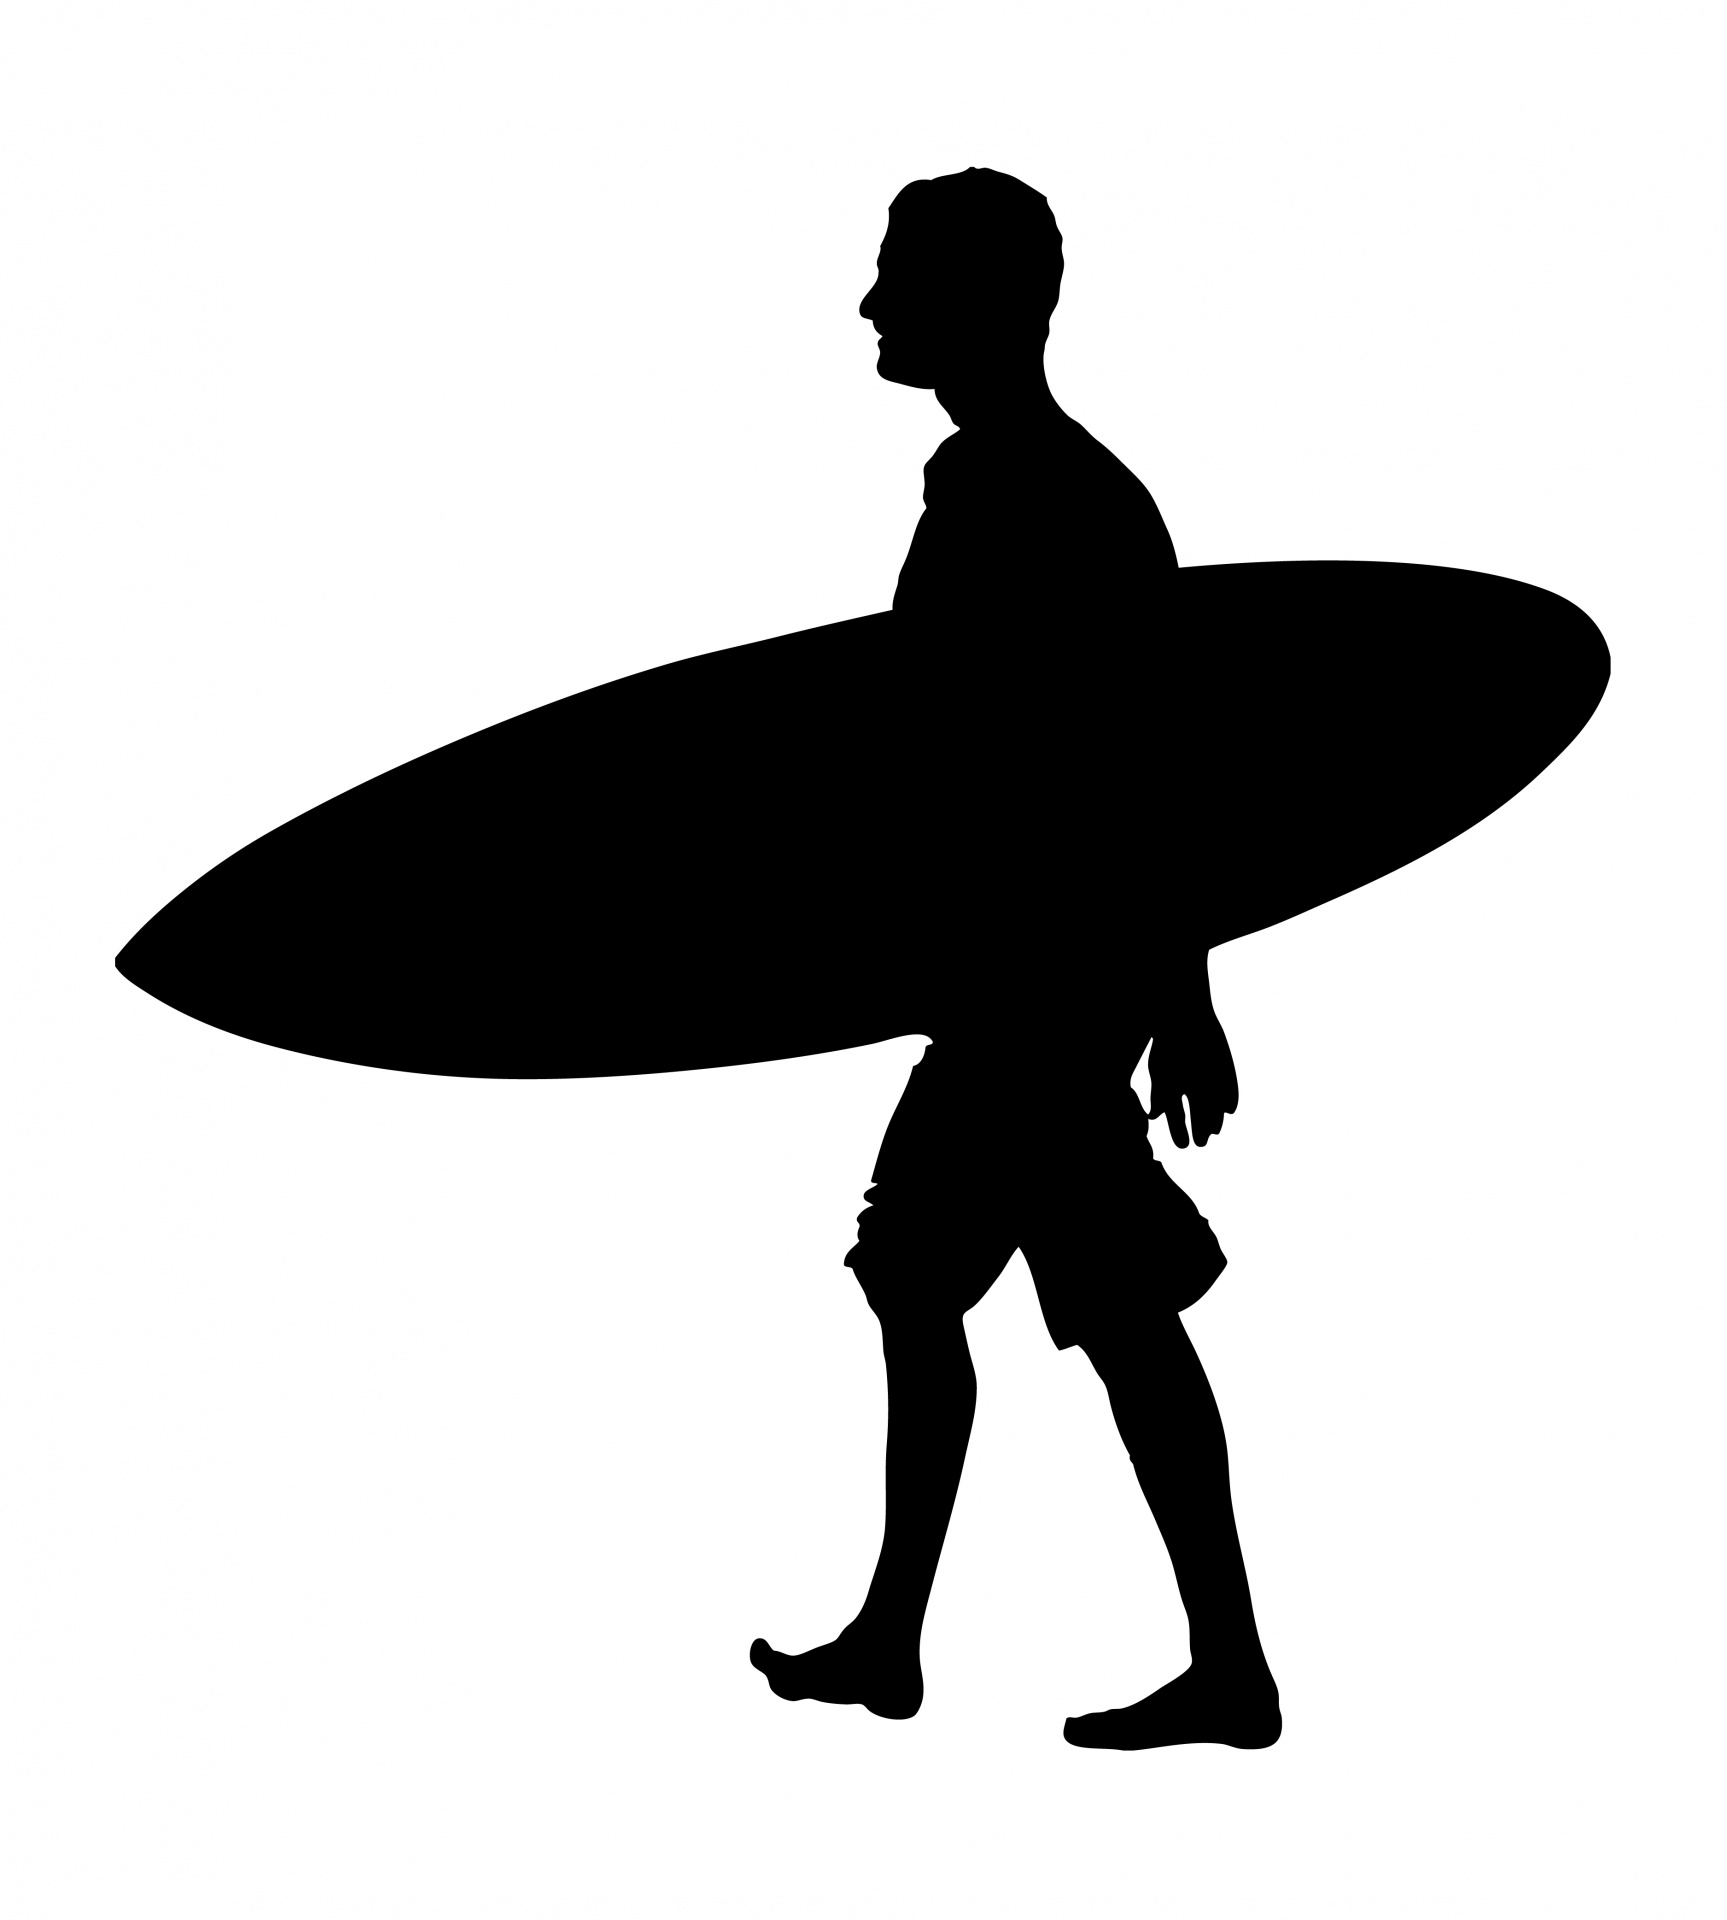 1727x1920 Man With Surfboard Silhouette Free Stock Photo